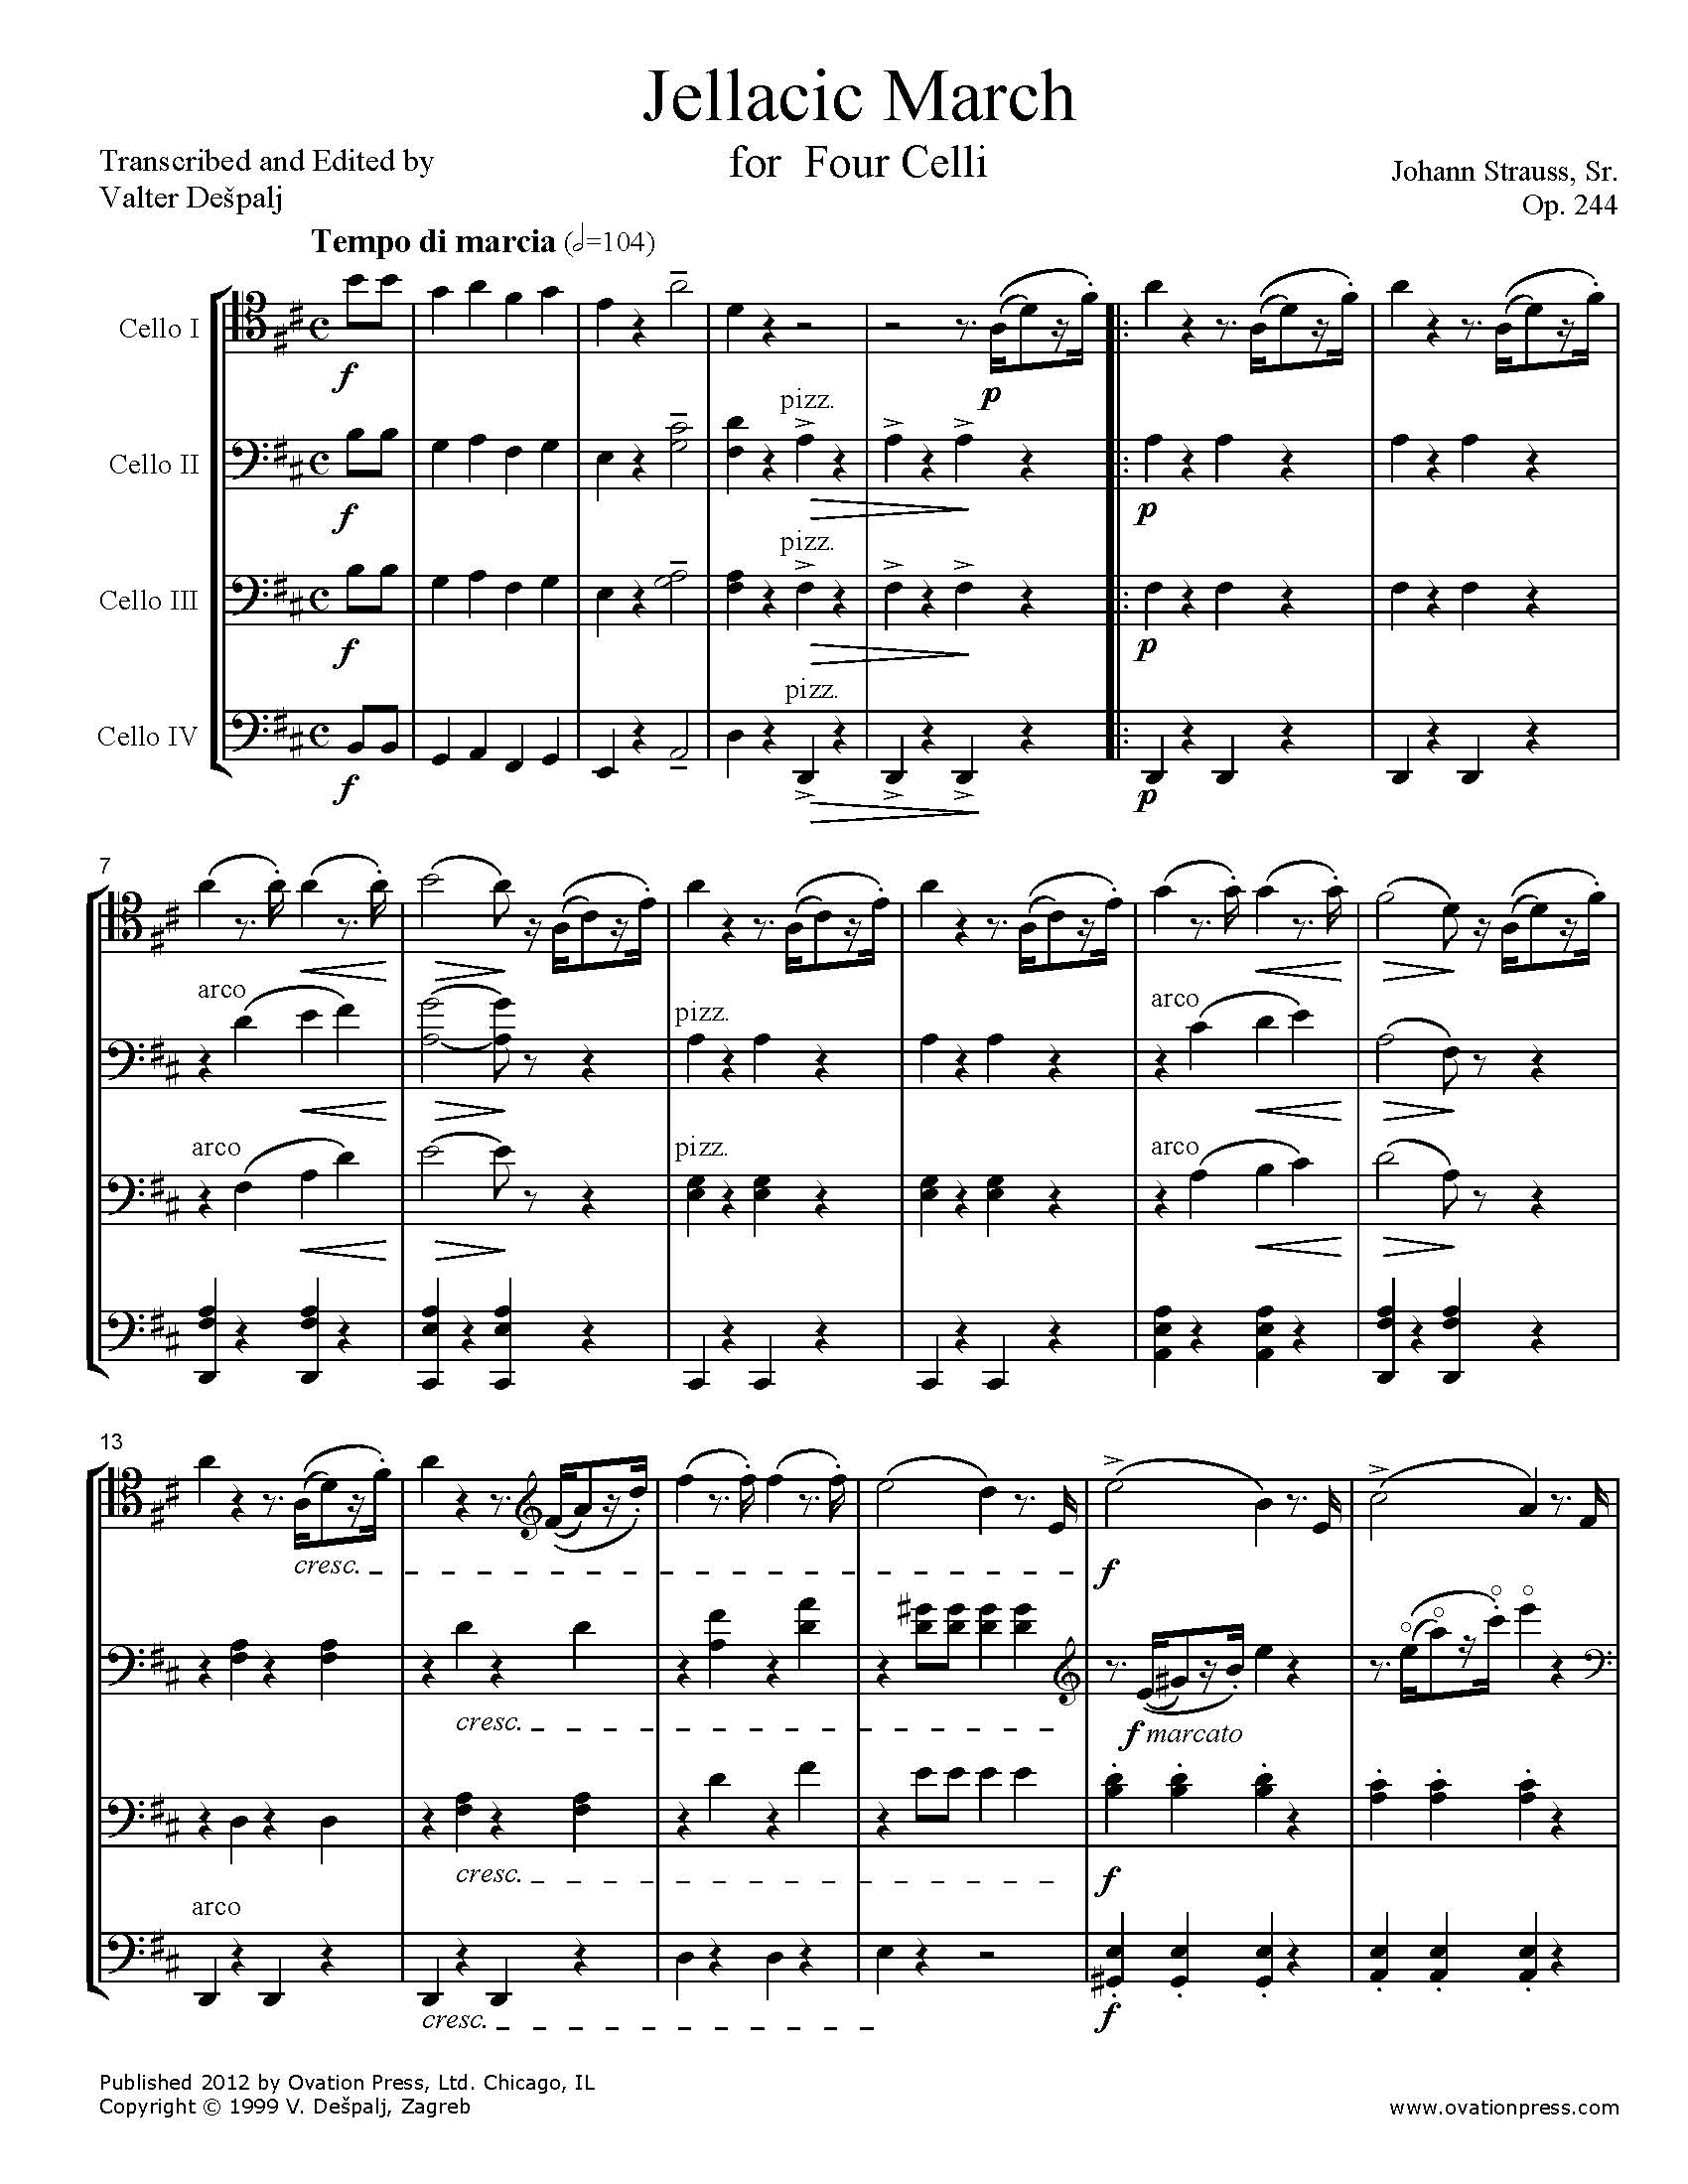 Strauss Jellacic March Transcribed for Cello Quartet